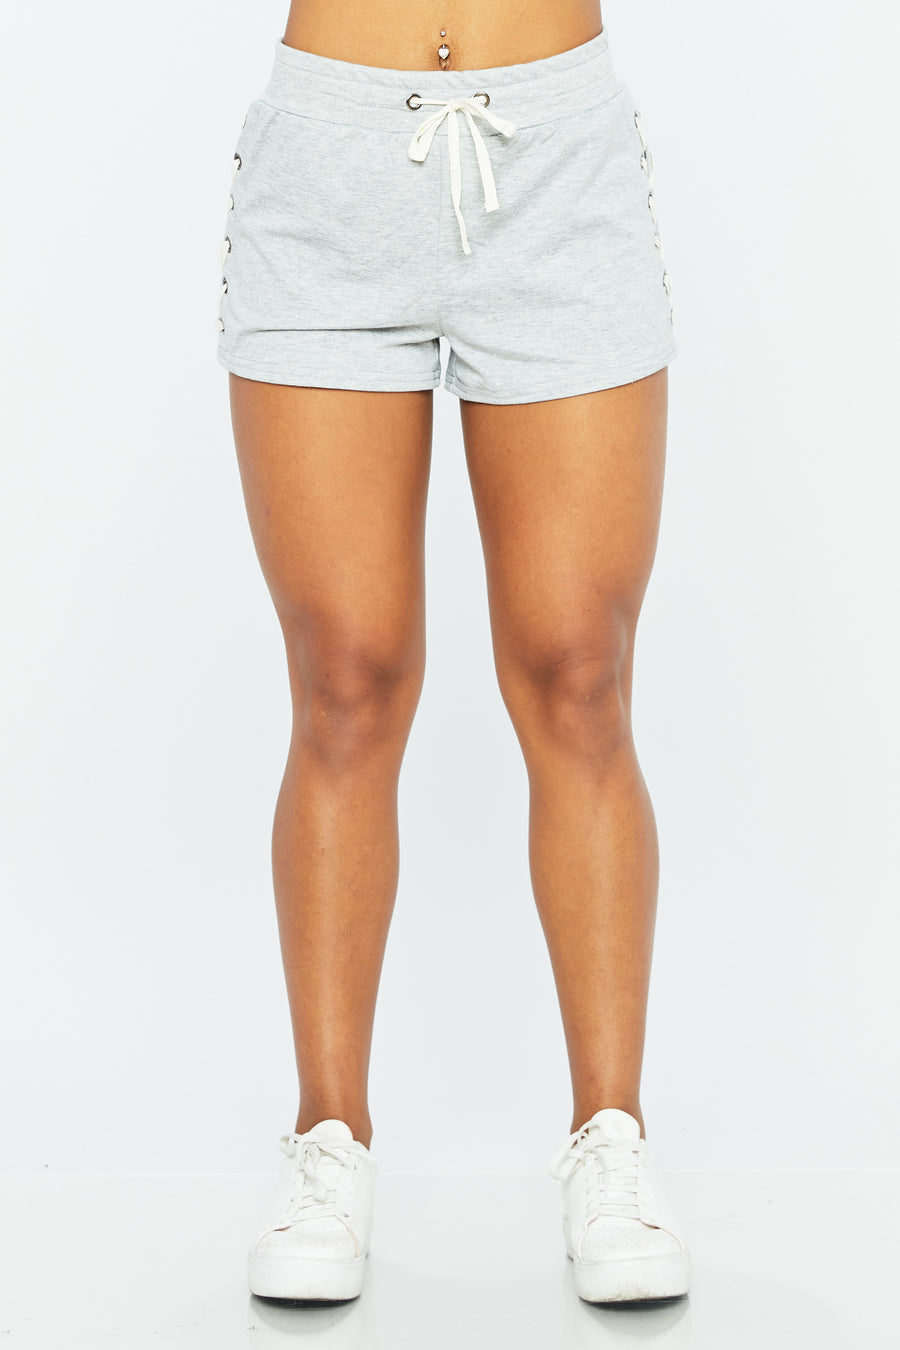 Cozy Up Shorts - HoneyBum